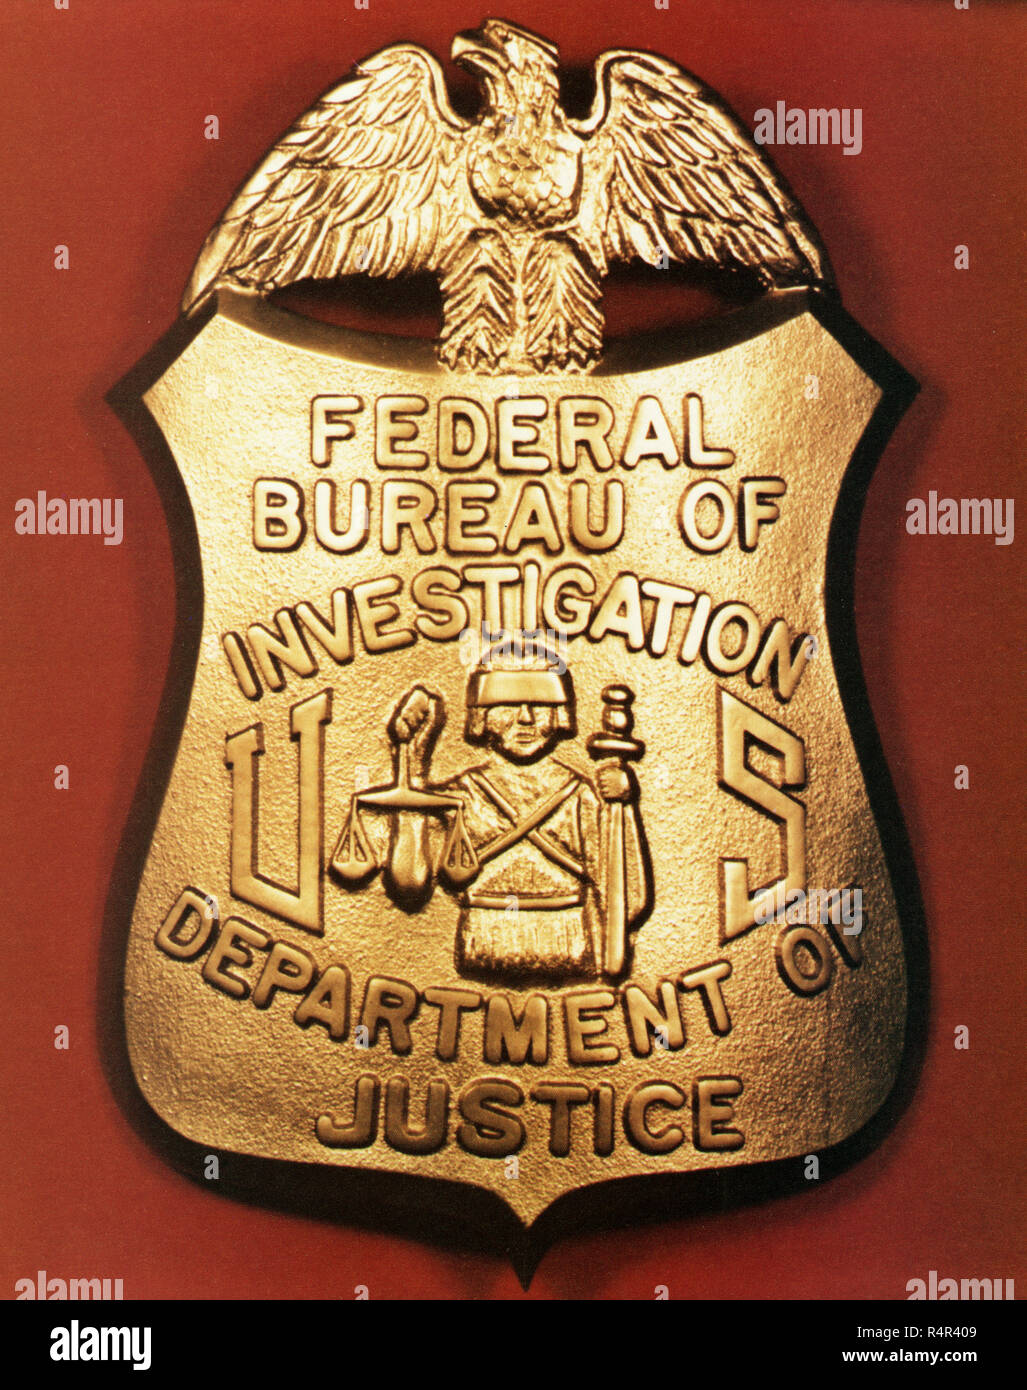 Fbi Badge Stock Photos & Fbi Badge Stock Images - Alamy